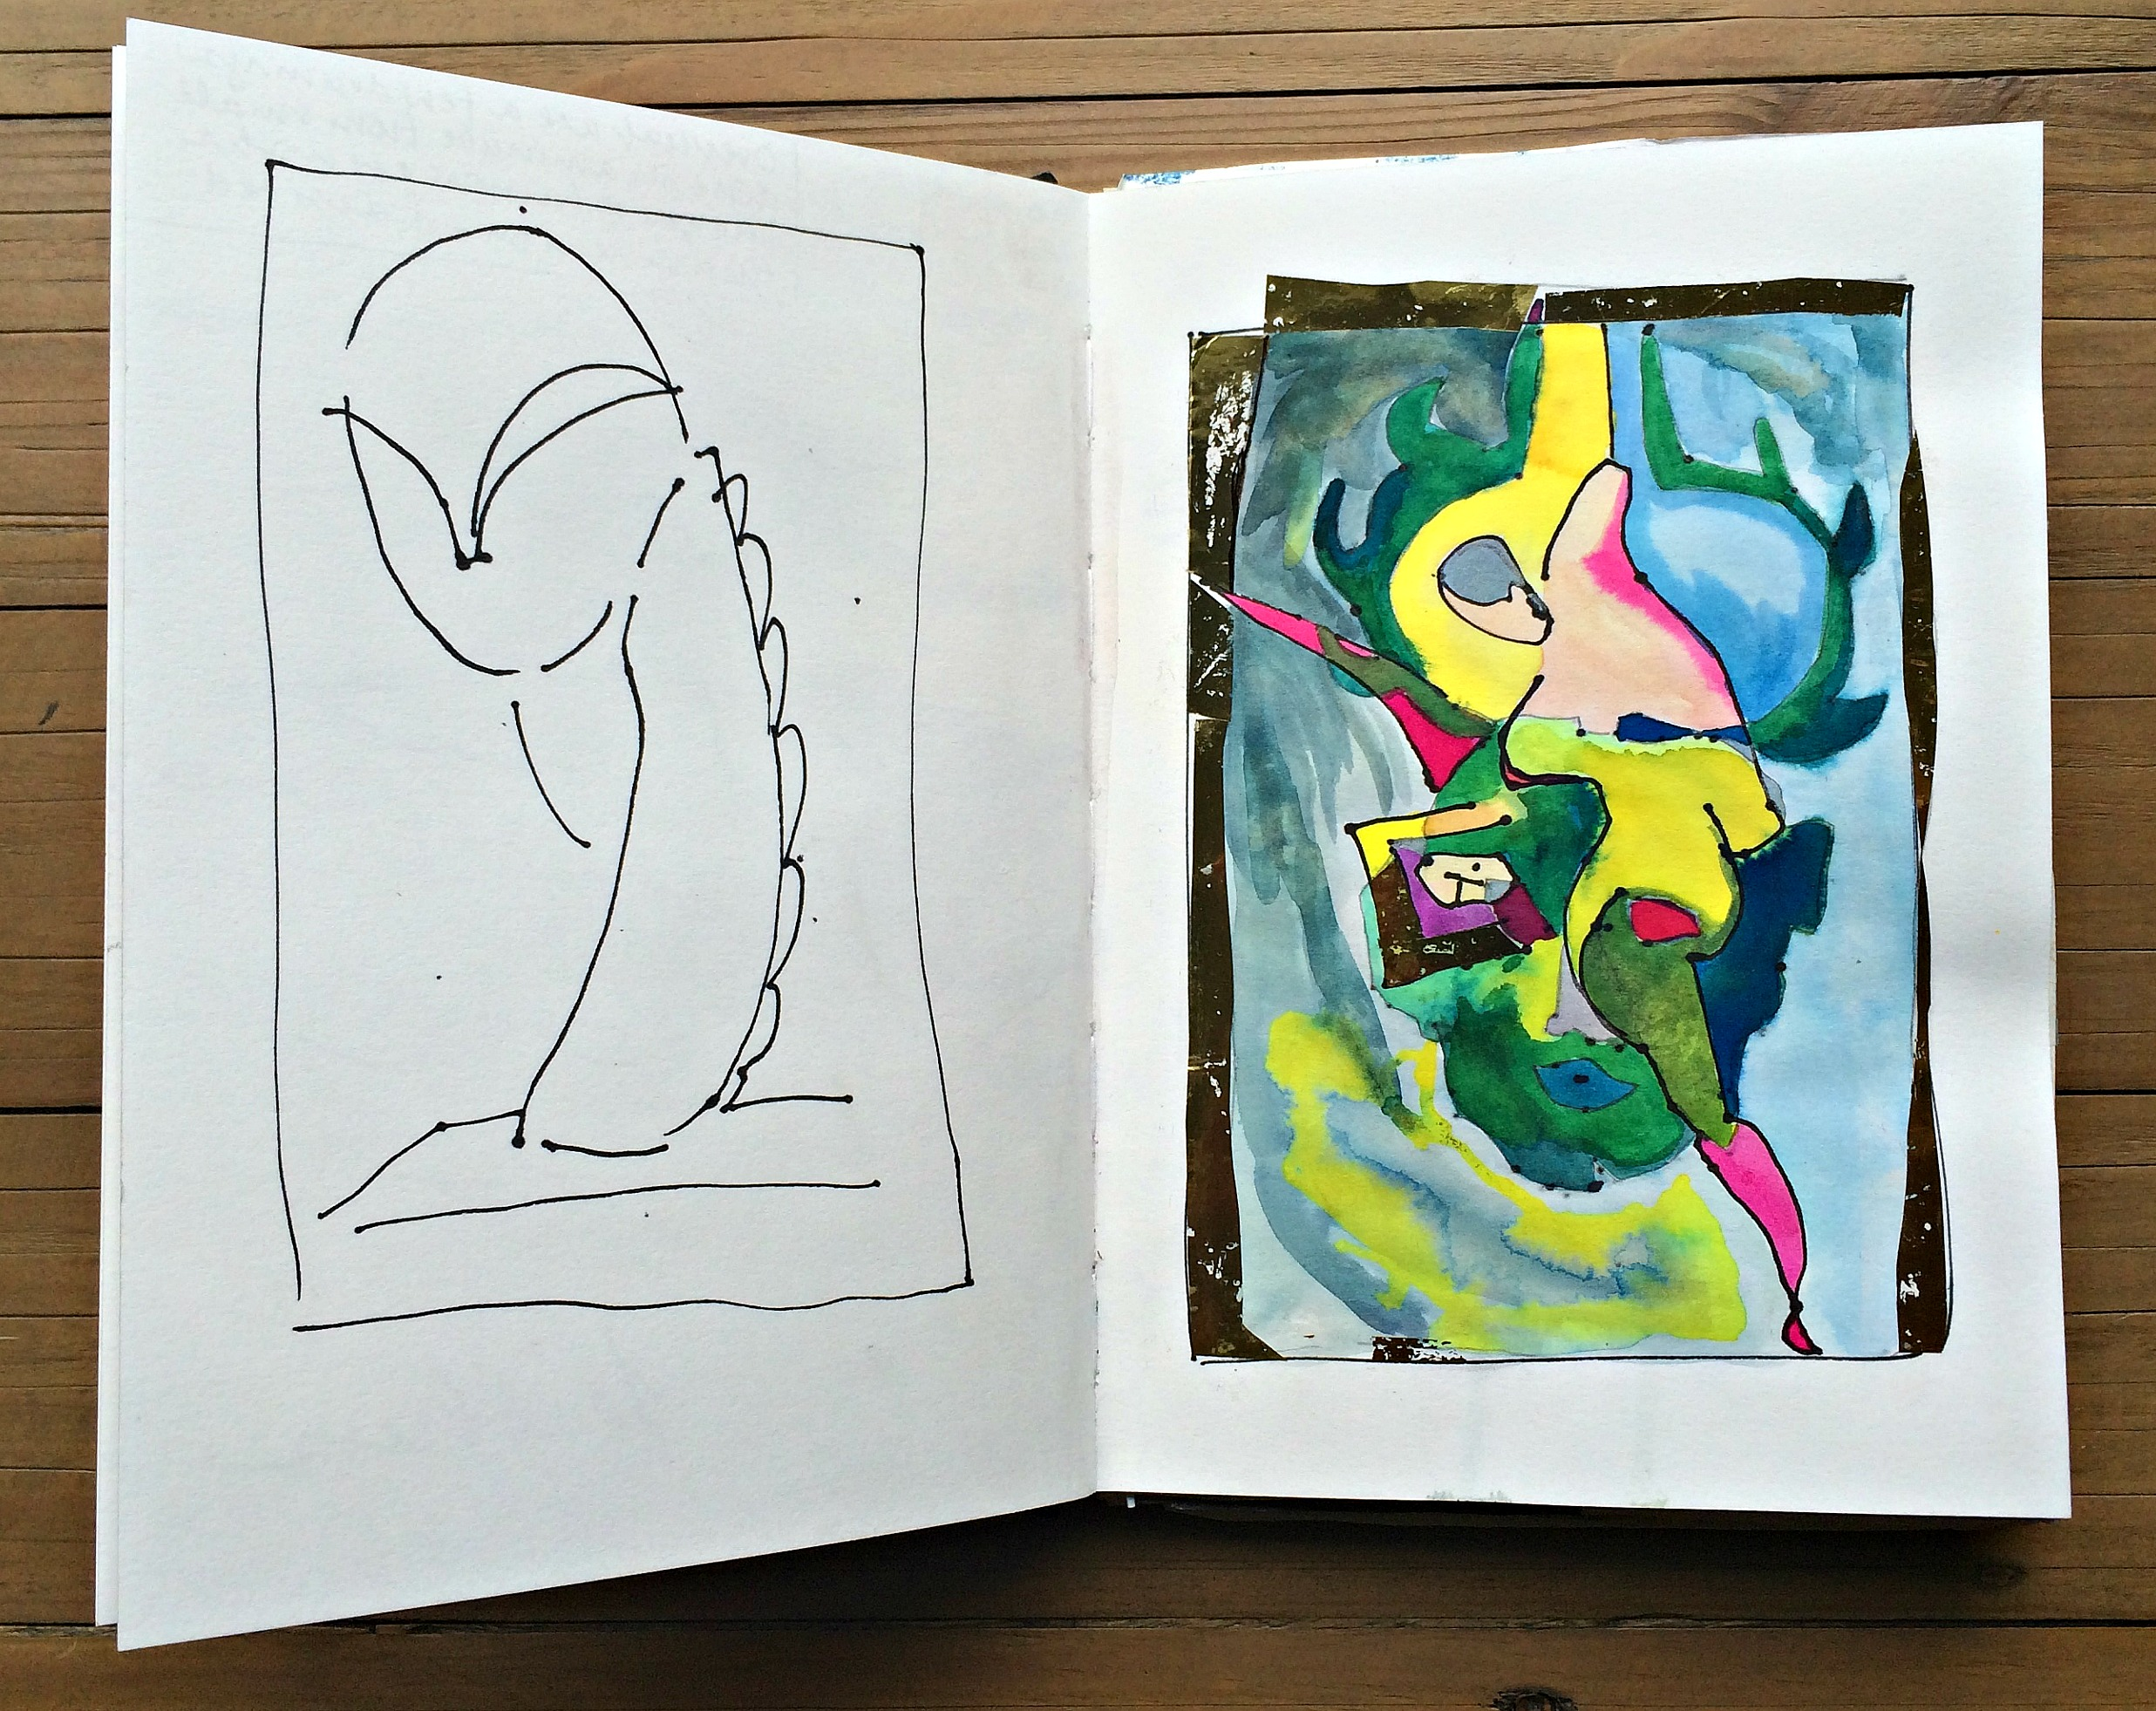 Sketchbook 1: one minute sketches from art works, then reimagined